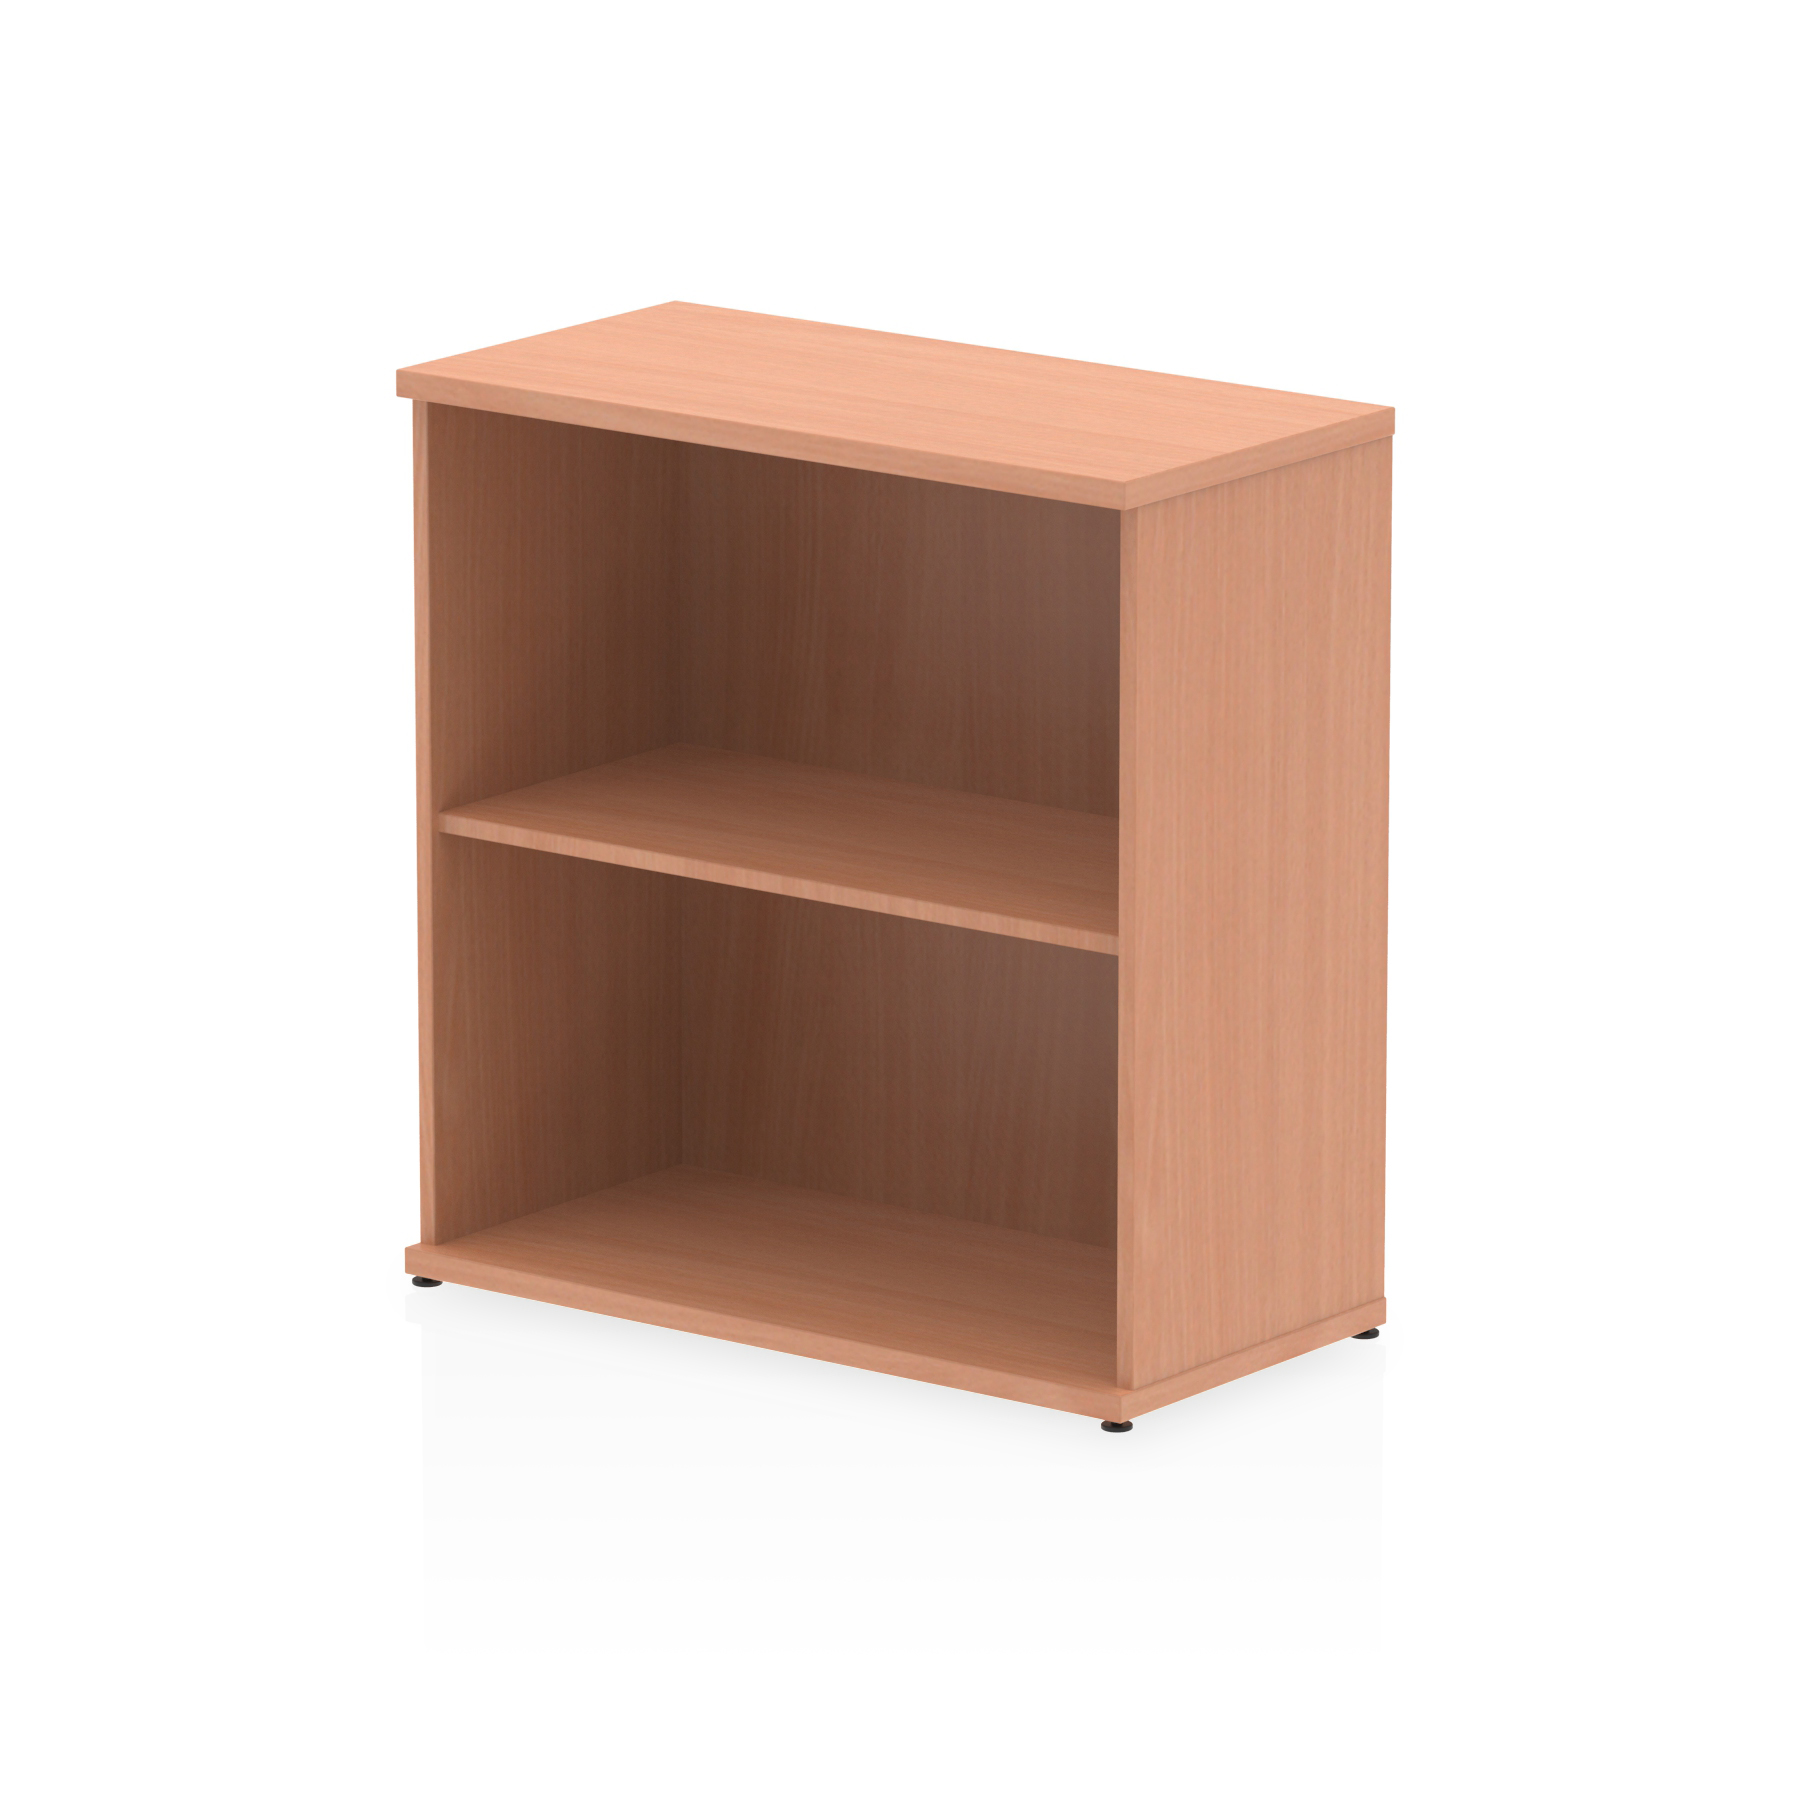 Up To 1200mm High Impulse 800mm Bookcase Beech I000049